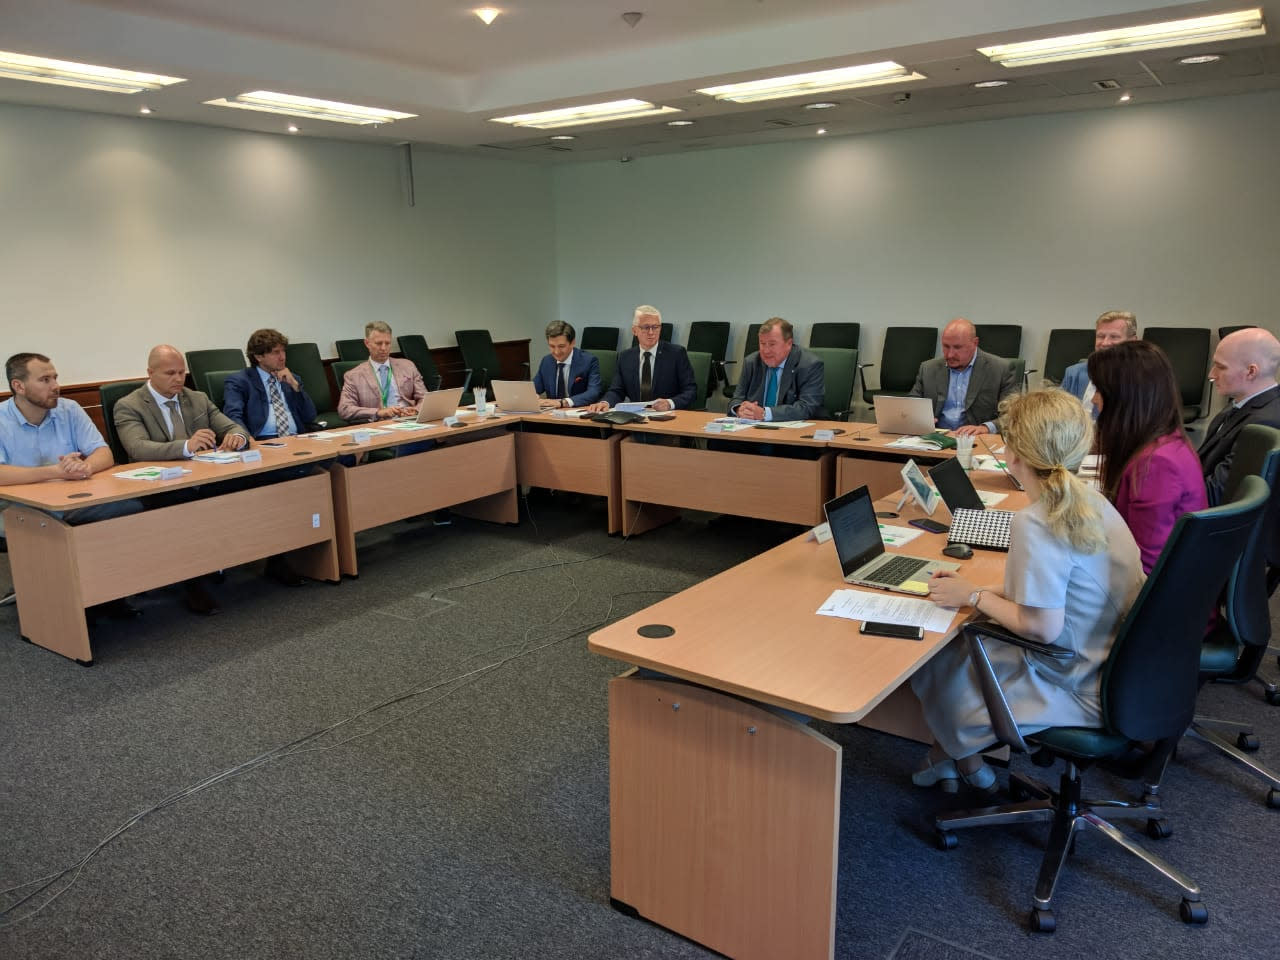 The first meeting of IIB Management Board was held in the new Budapest headquarters